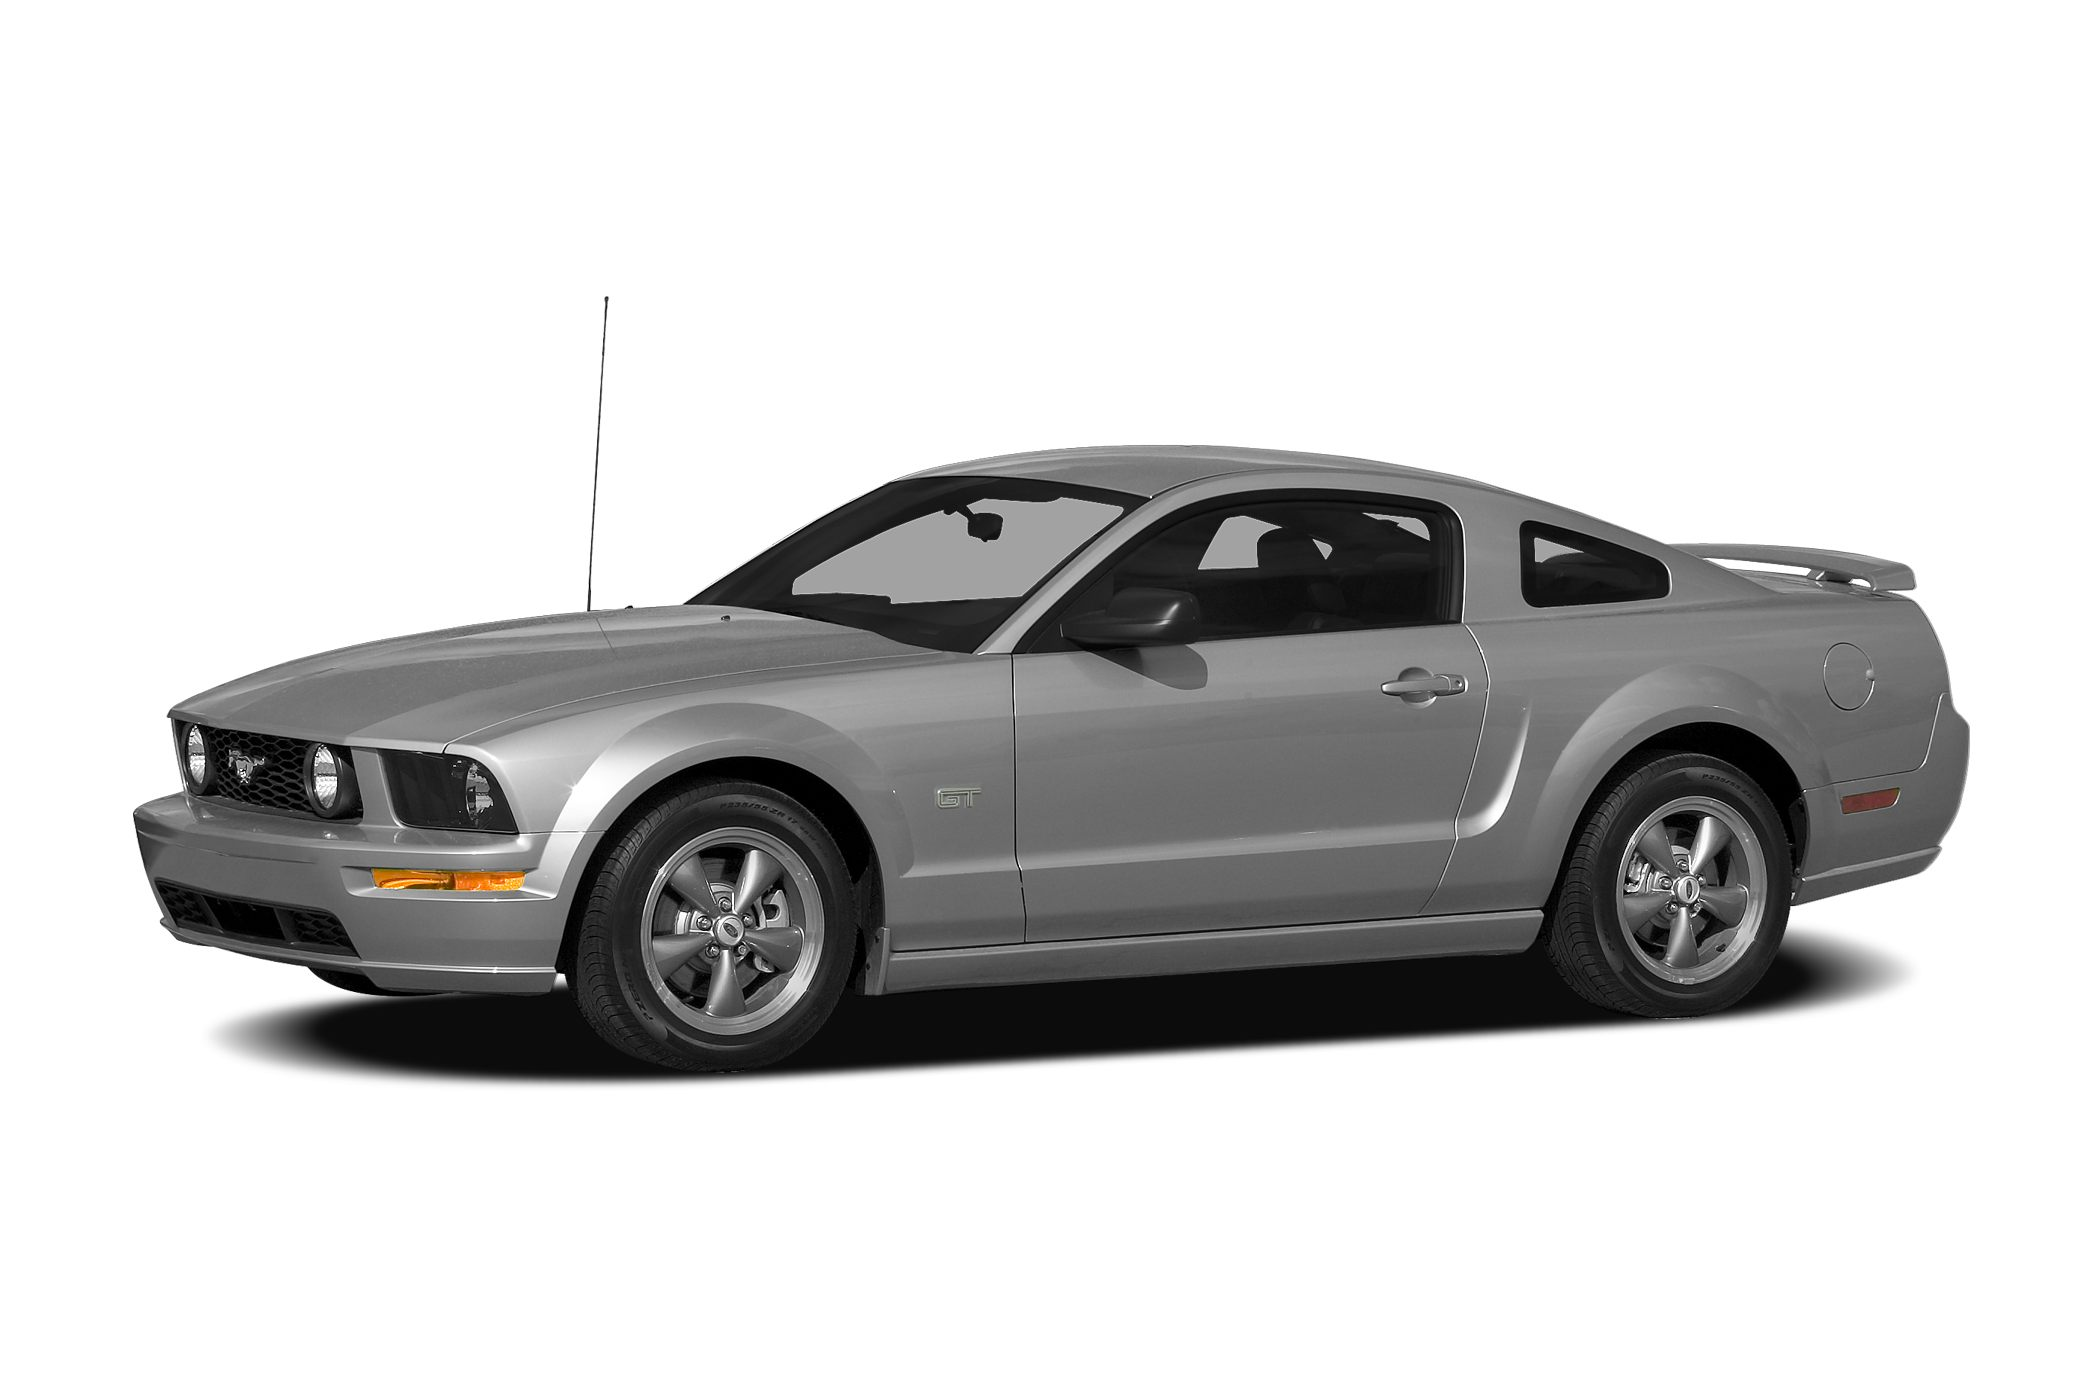 2009 Ford Mustang Coupe for sale in Lincoln for $12,995 with 57,572 miles